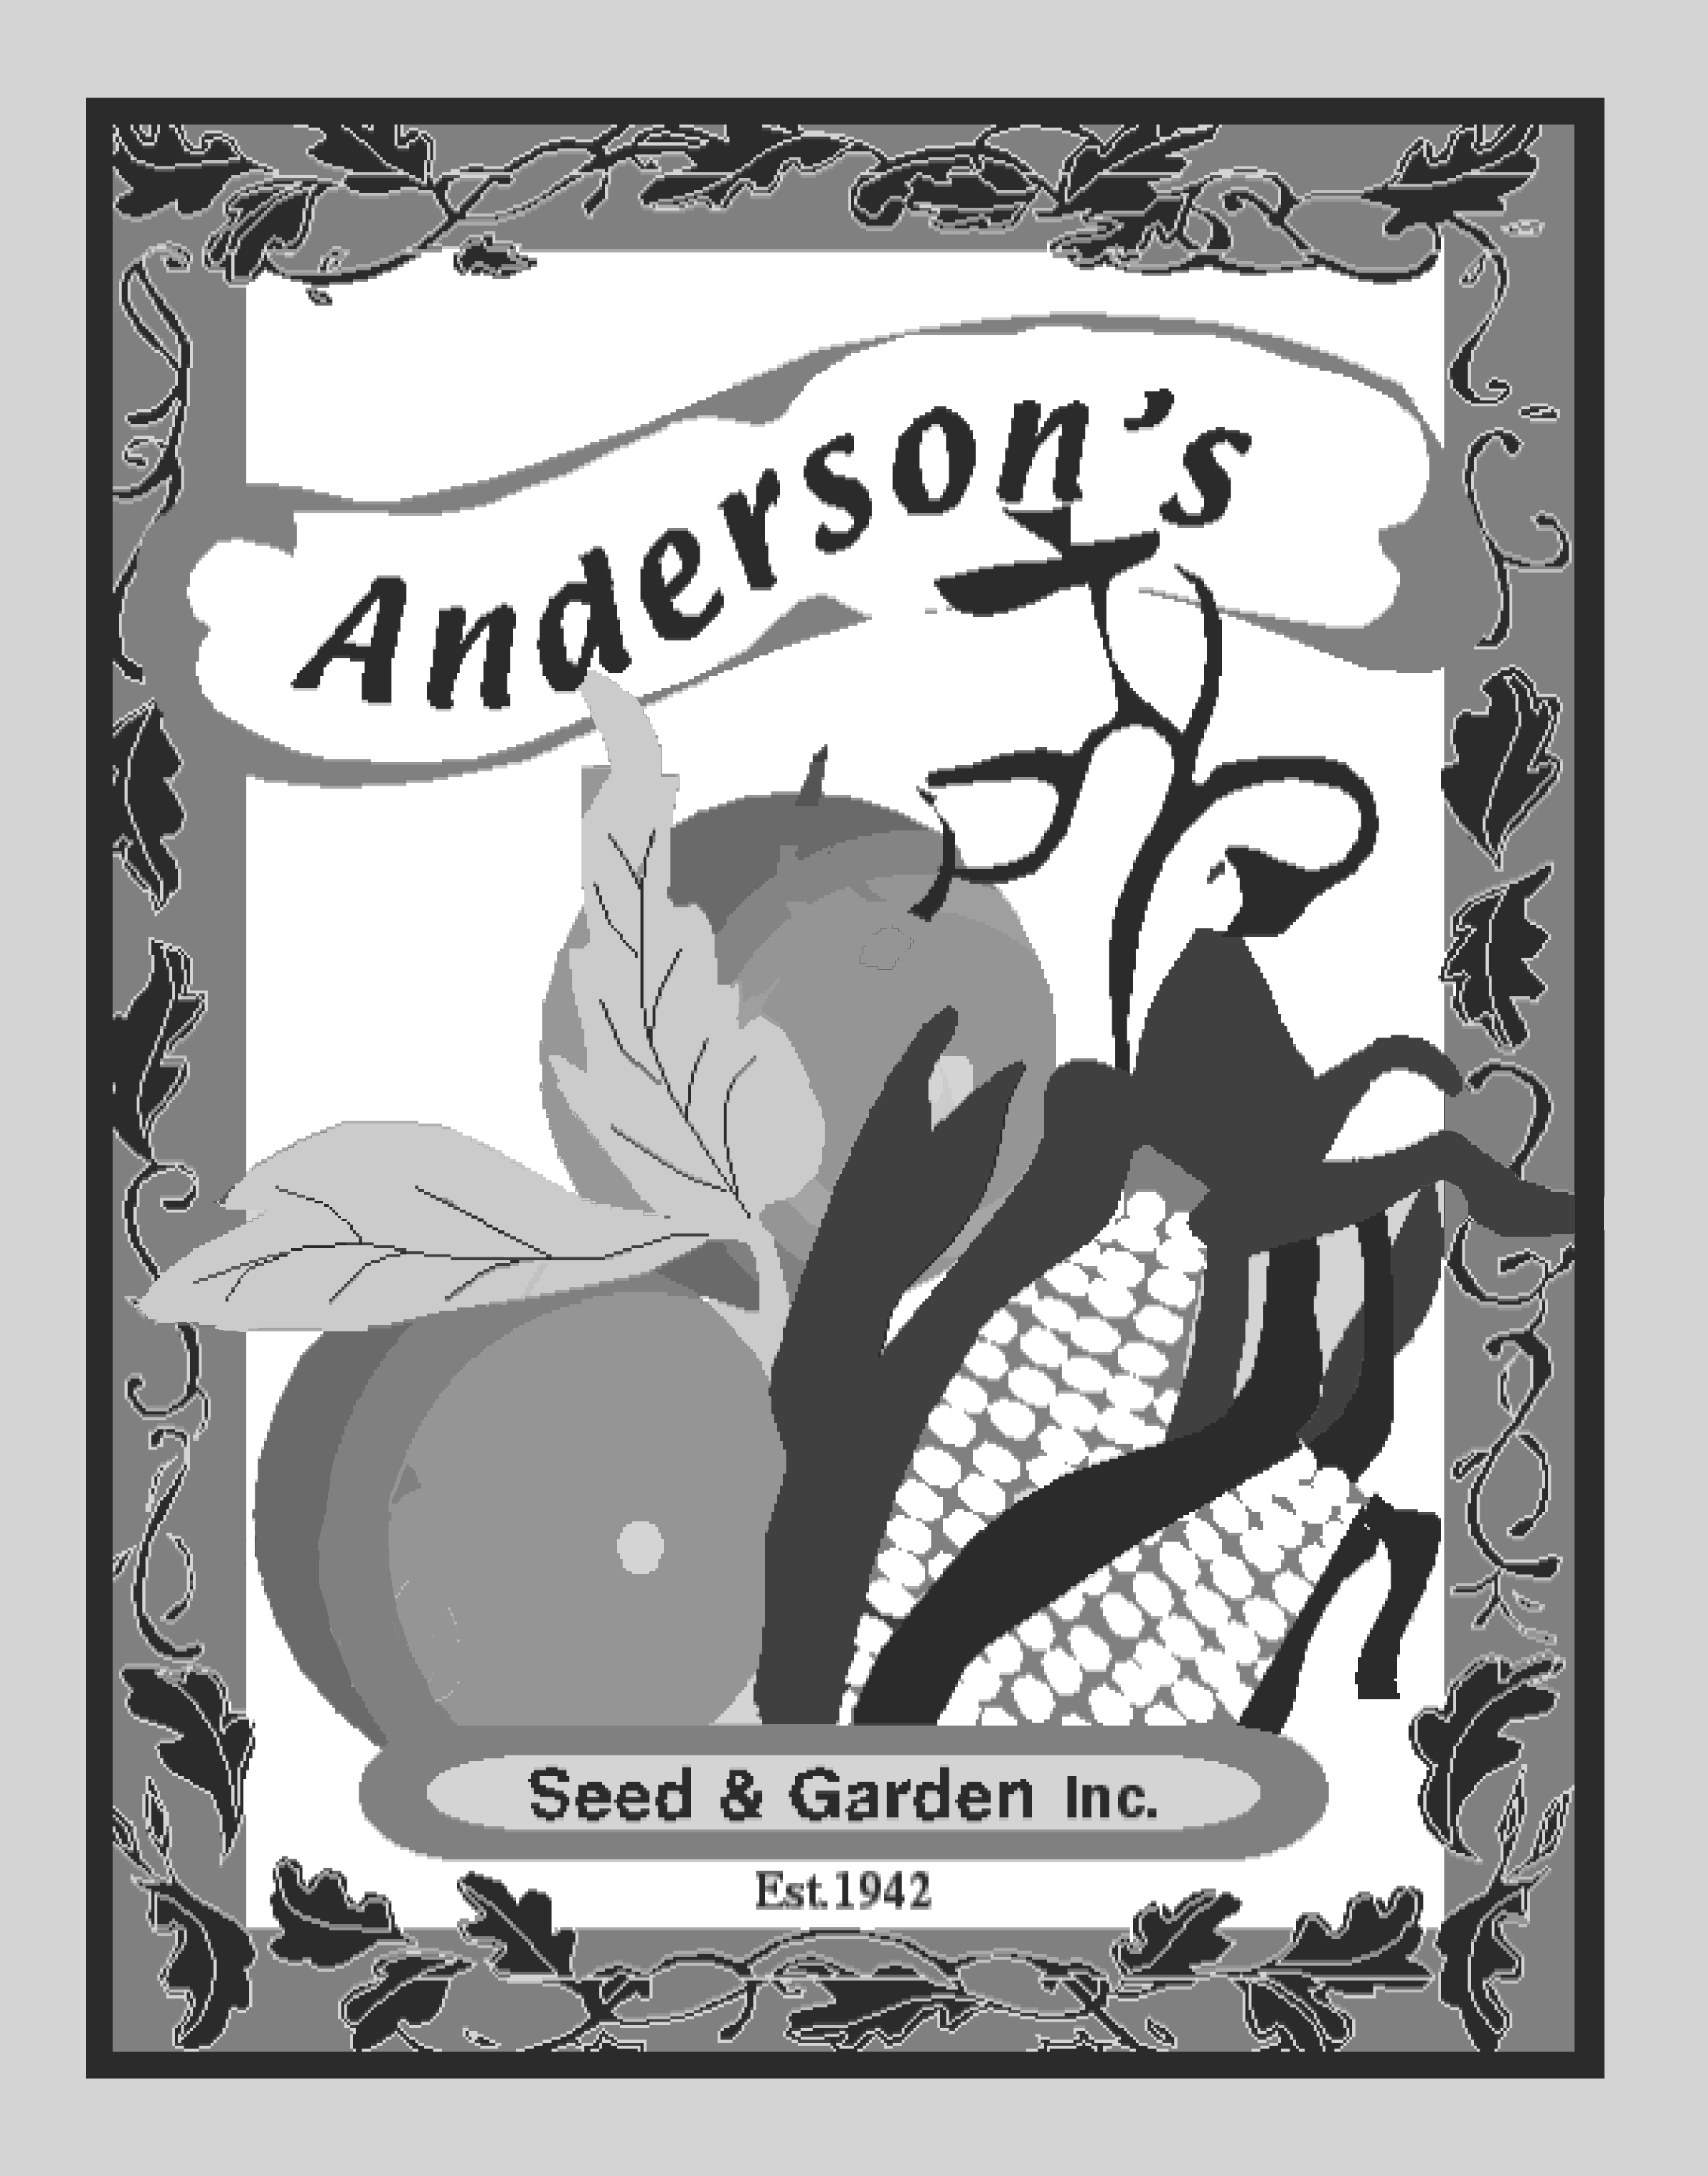 Black Dry Bean Open Pollinated Seed 1 lb.